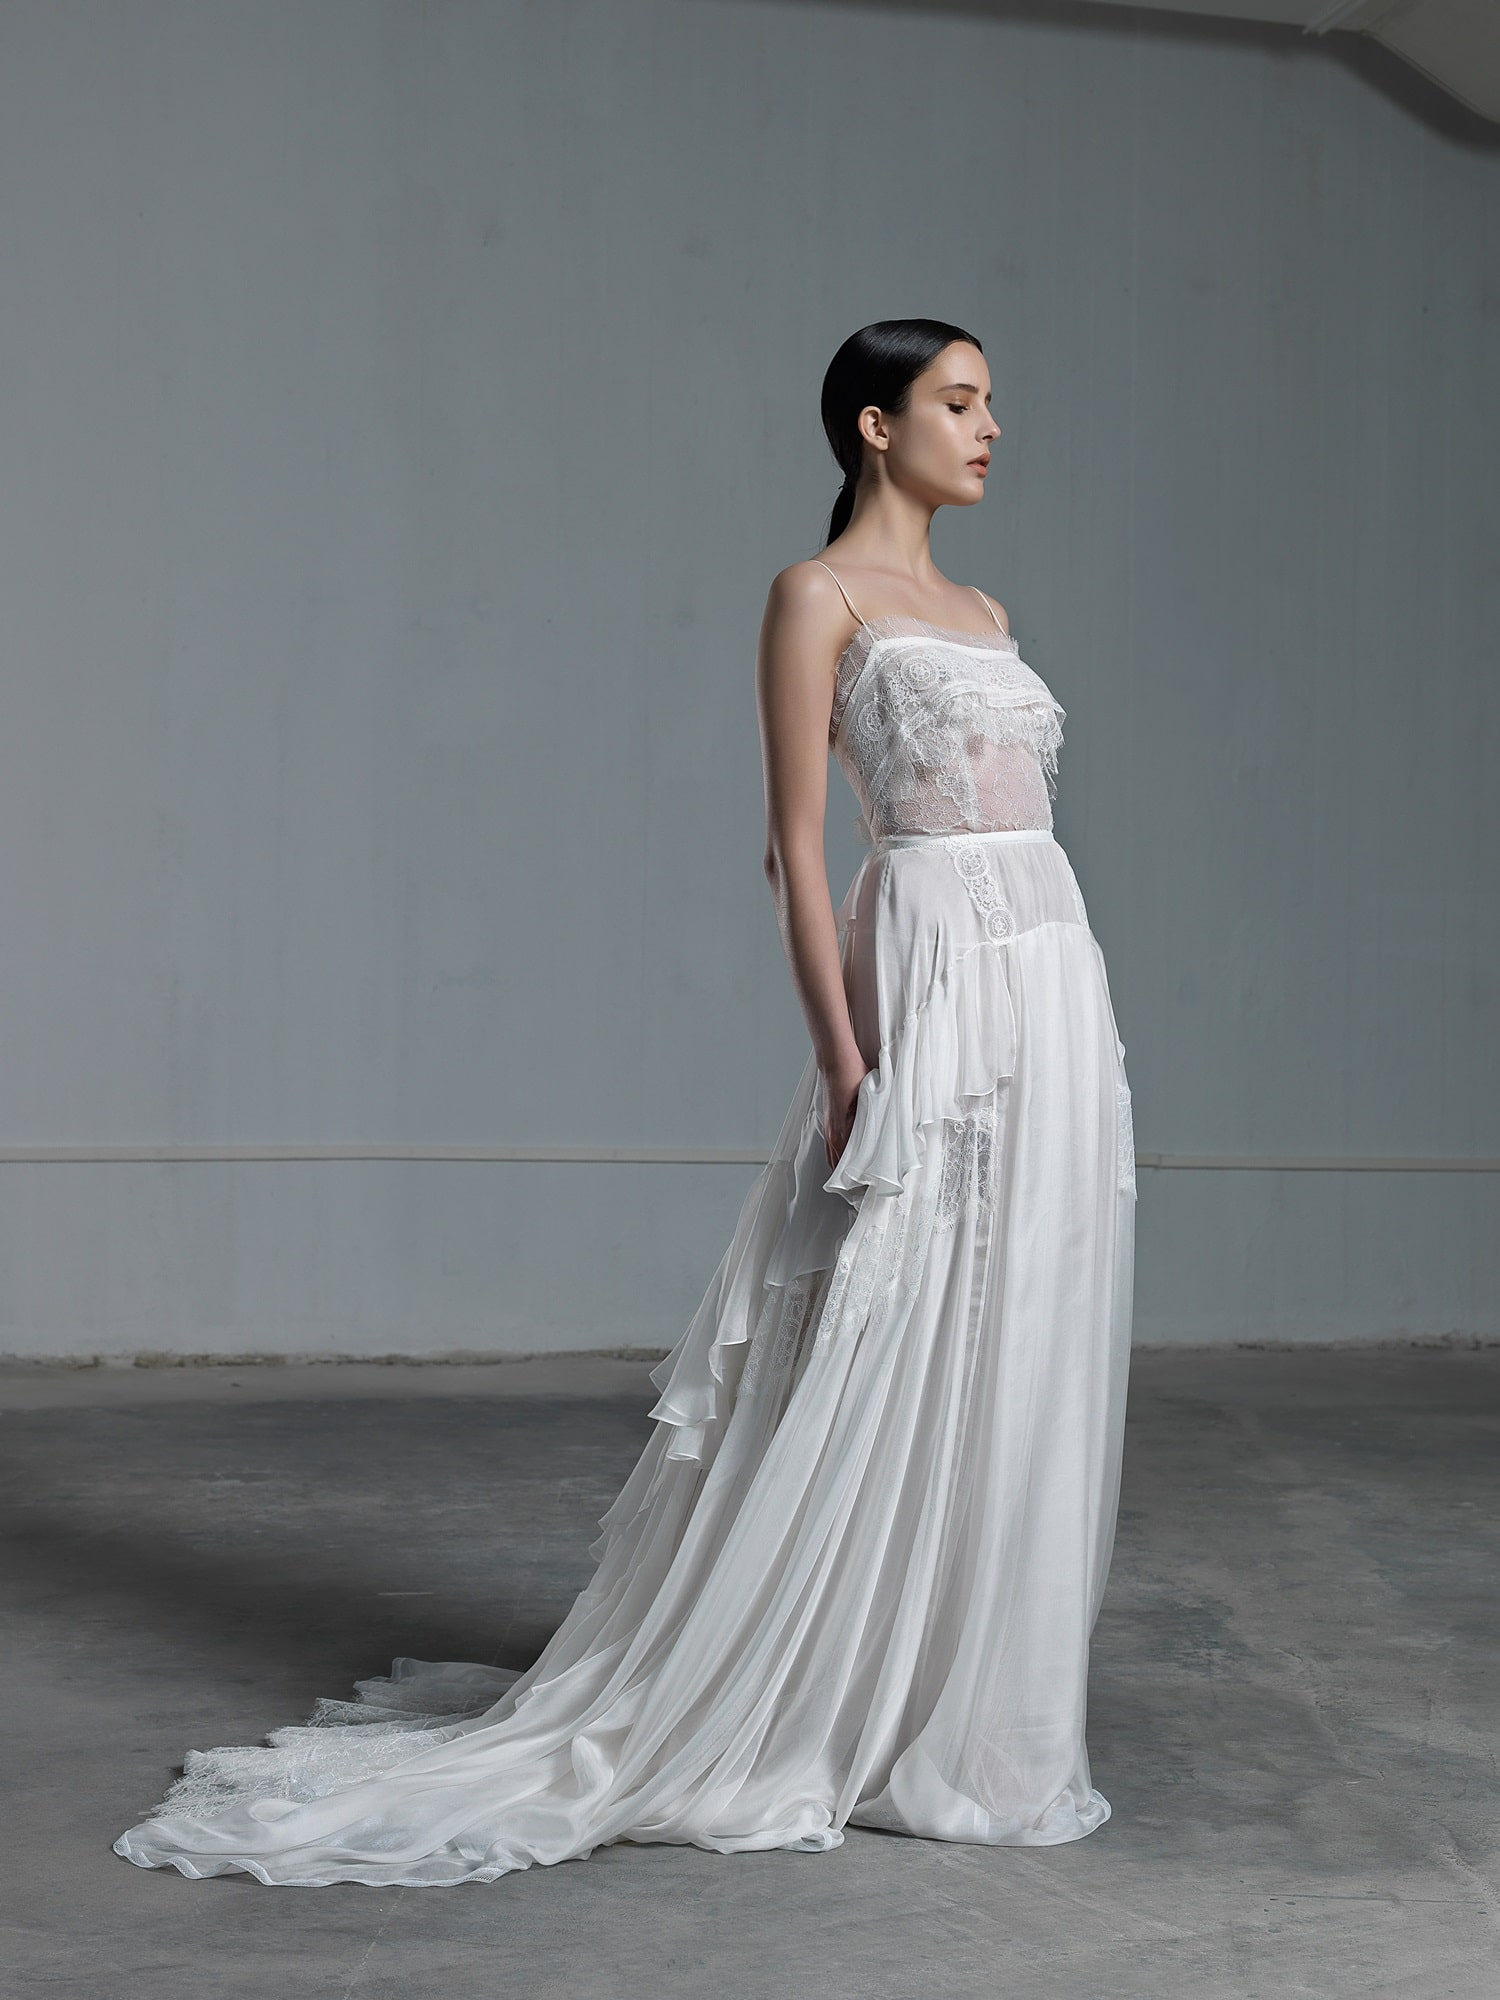 Romantic ethereal wedding dress vasia tzotzopoulou the wedding tales romantic ethereal wedding dress with lace top with transparencies and skinny straps with skirt with frills junglespirit Gallery